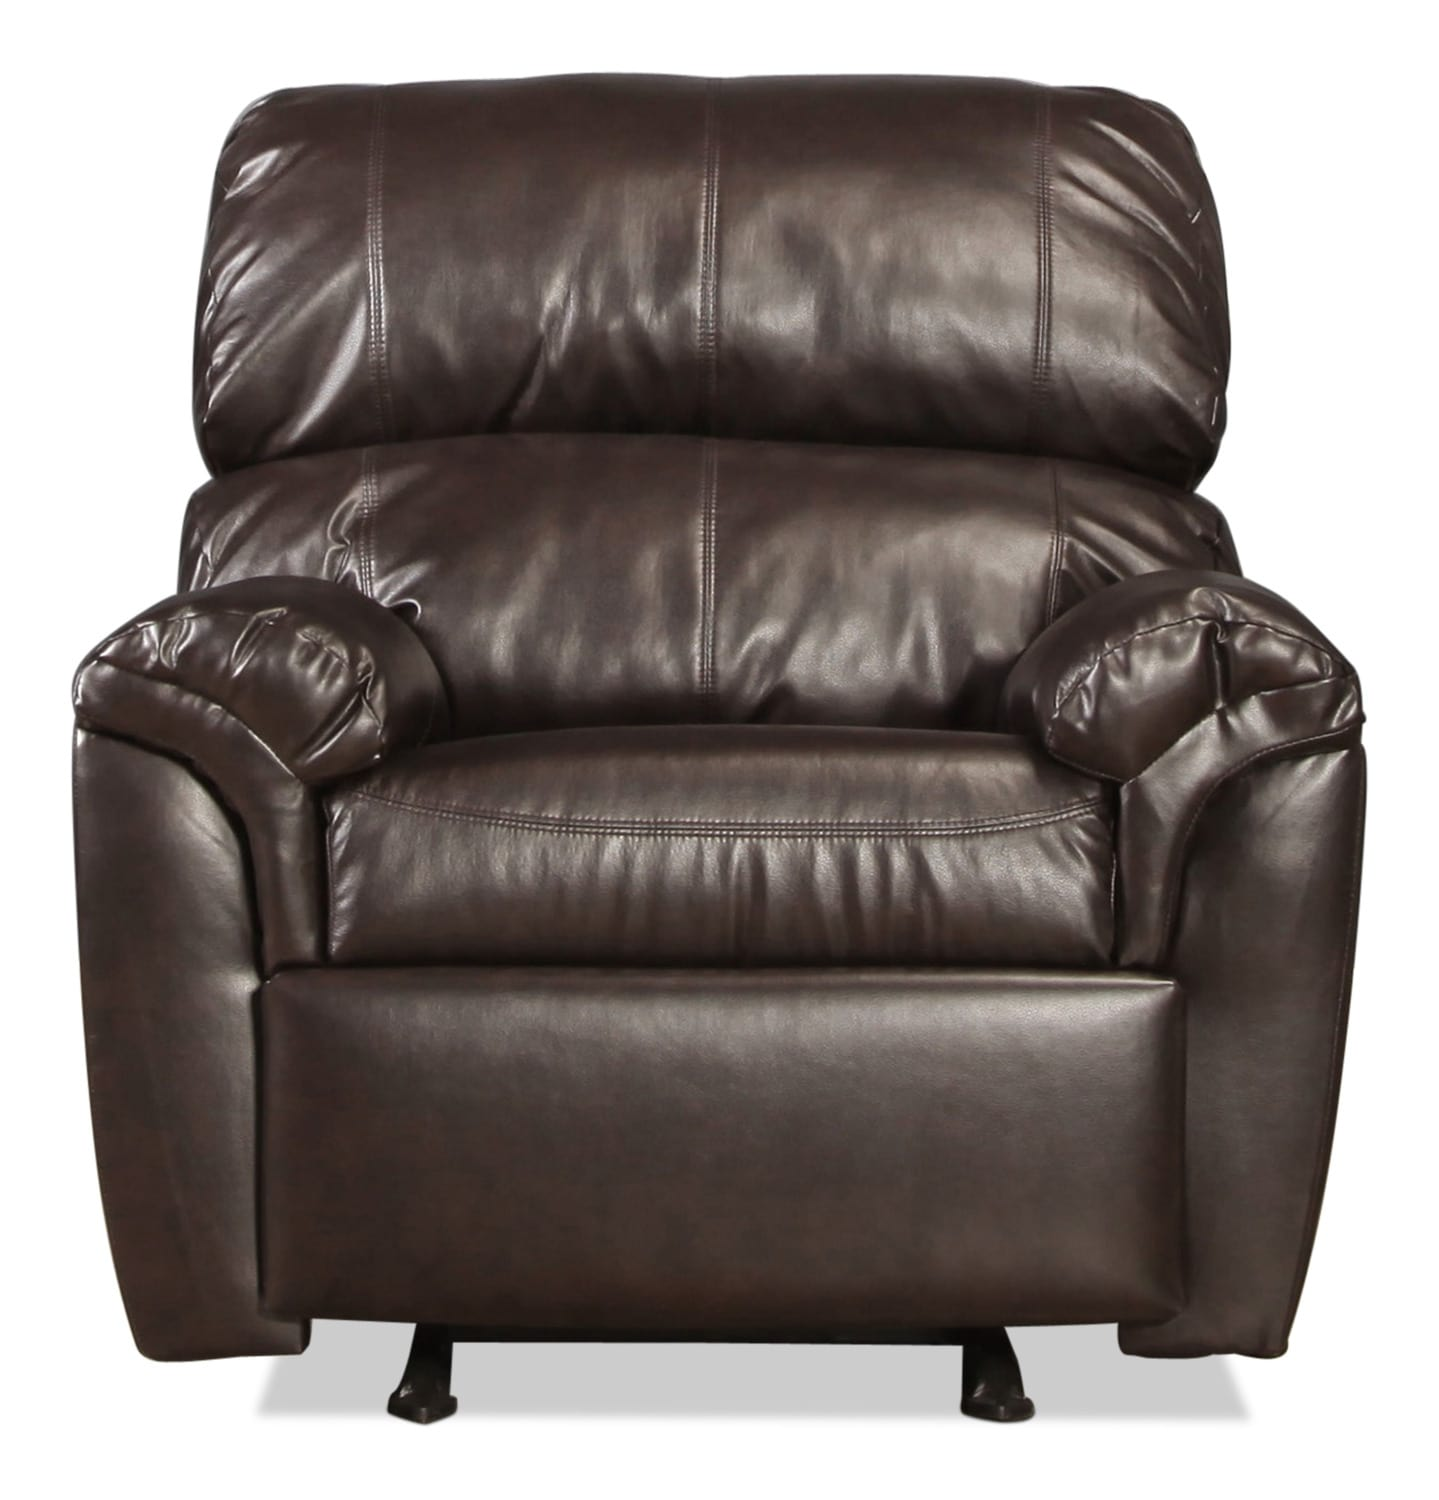 Westminster Recliner - Walnut